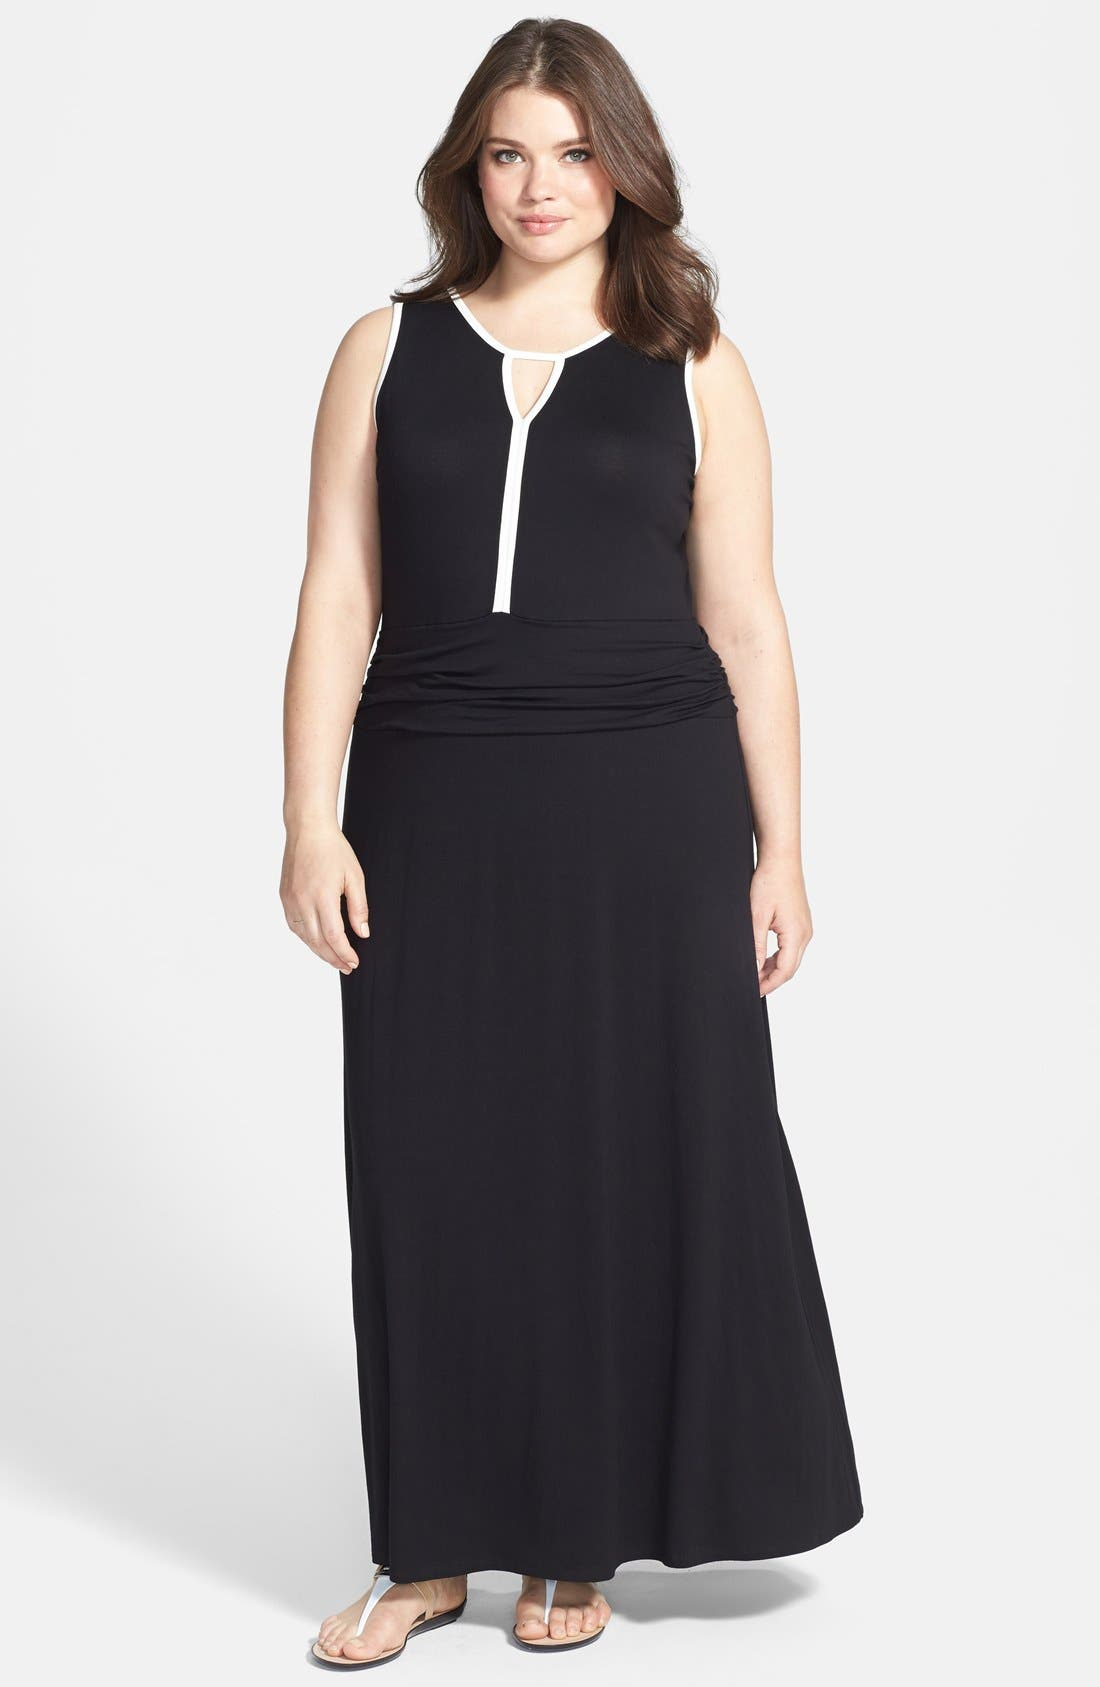 Alternate Image 1 Selected - Vince Camuto Colorblock Trim Maxi Dress (Plus Size)